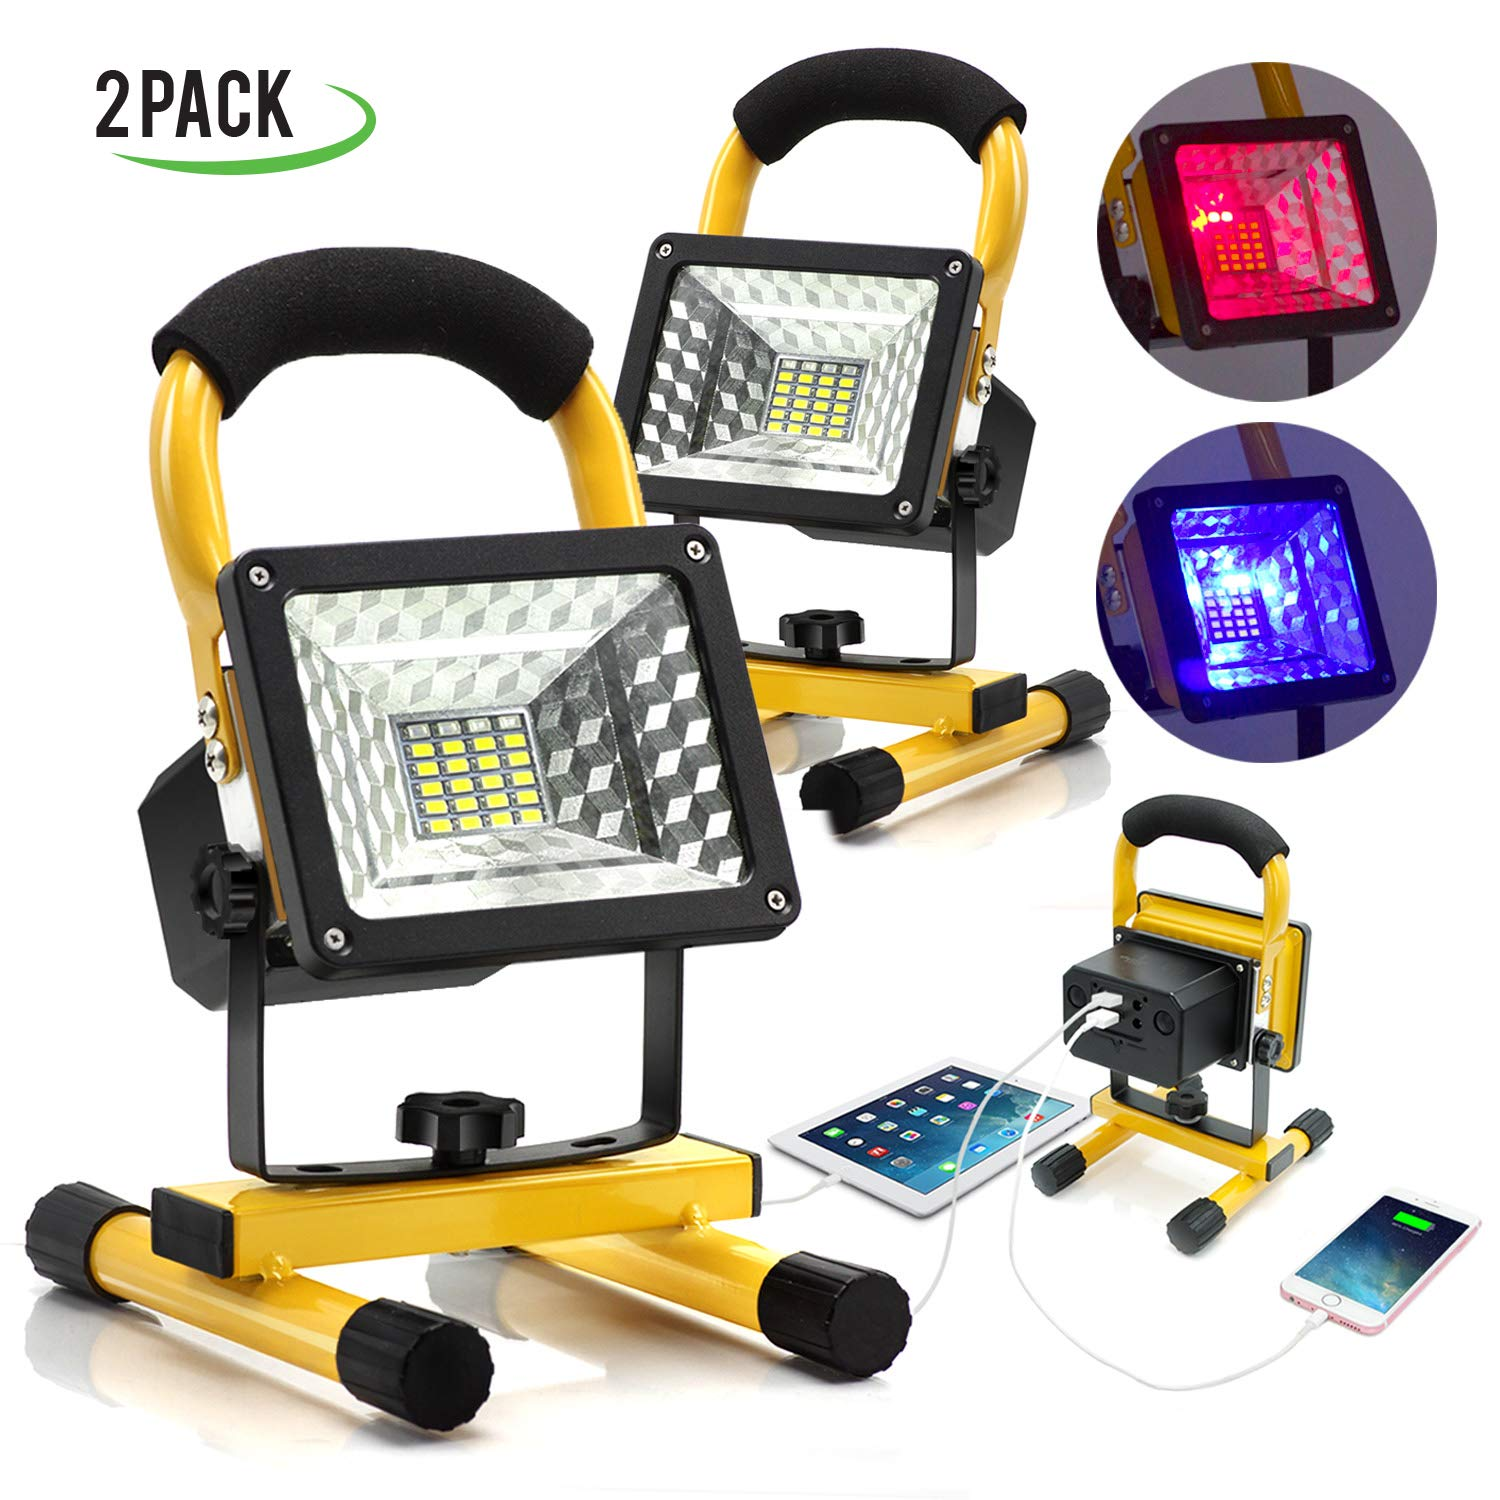 eTopLighting [2-Pack] 15W Portable LED Flood Spot Light with Rechargeable Battery and Built-in Power Bank for Outdoor Activities, Work Light, Camping Lights, Emergency Light, Outdoor Lantern, APL1562